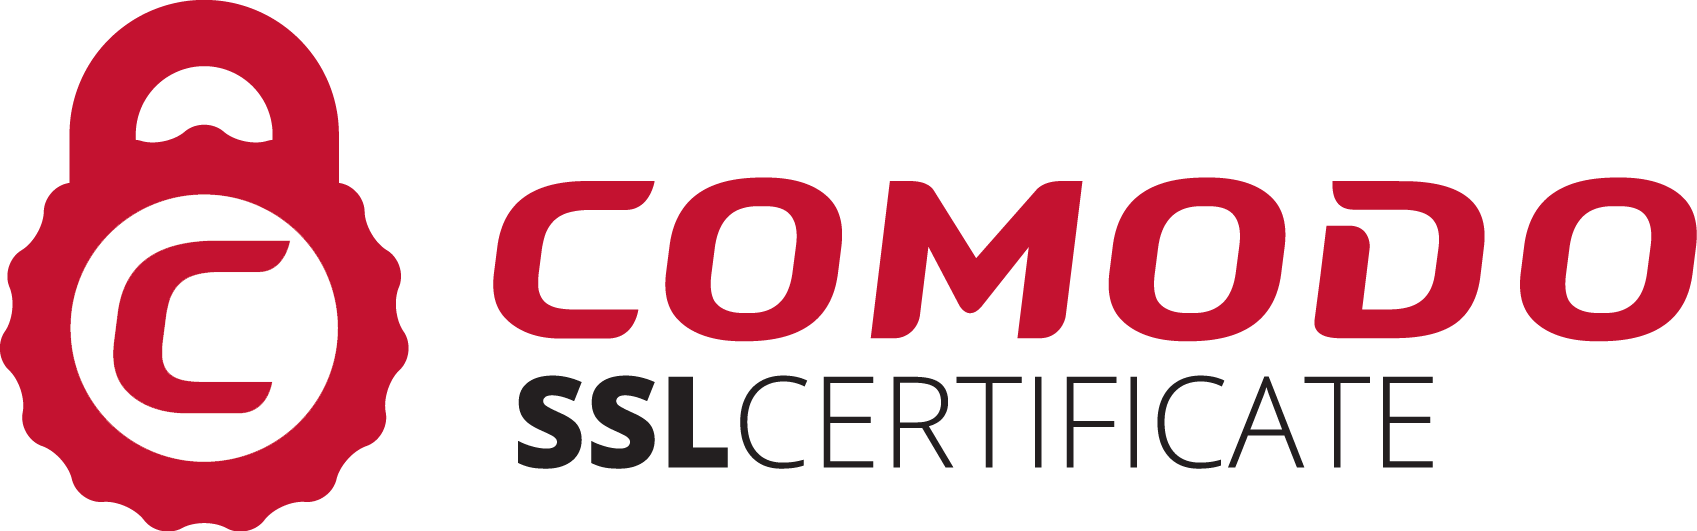 Rain Group Ssl Certificate Pricing